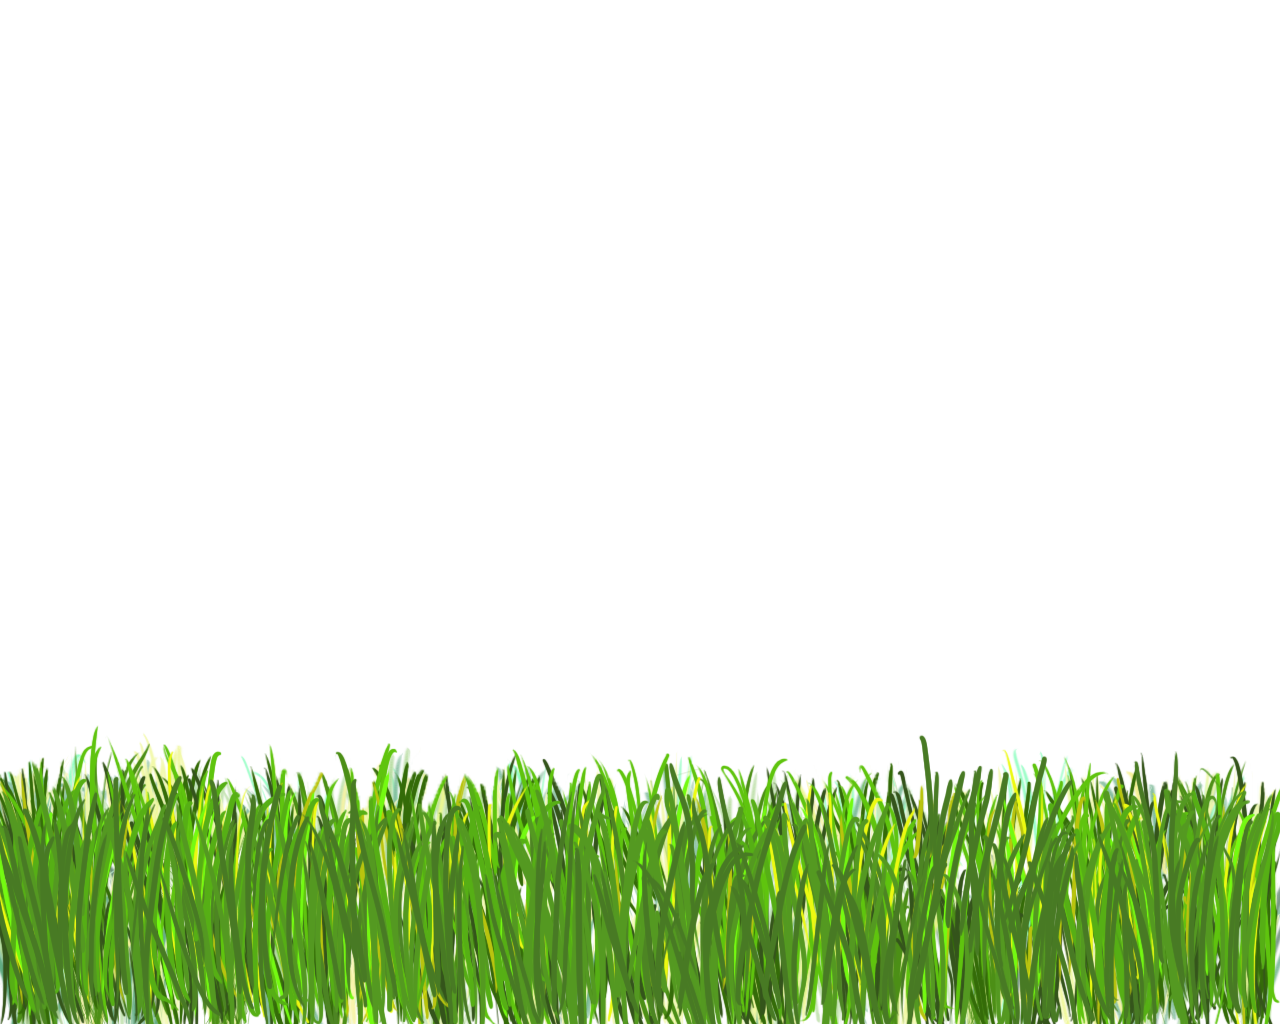 Designs Png Grass image #4757